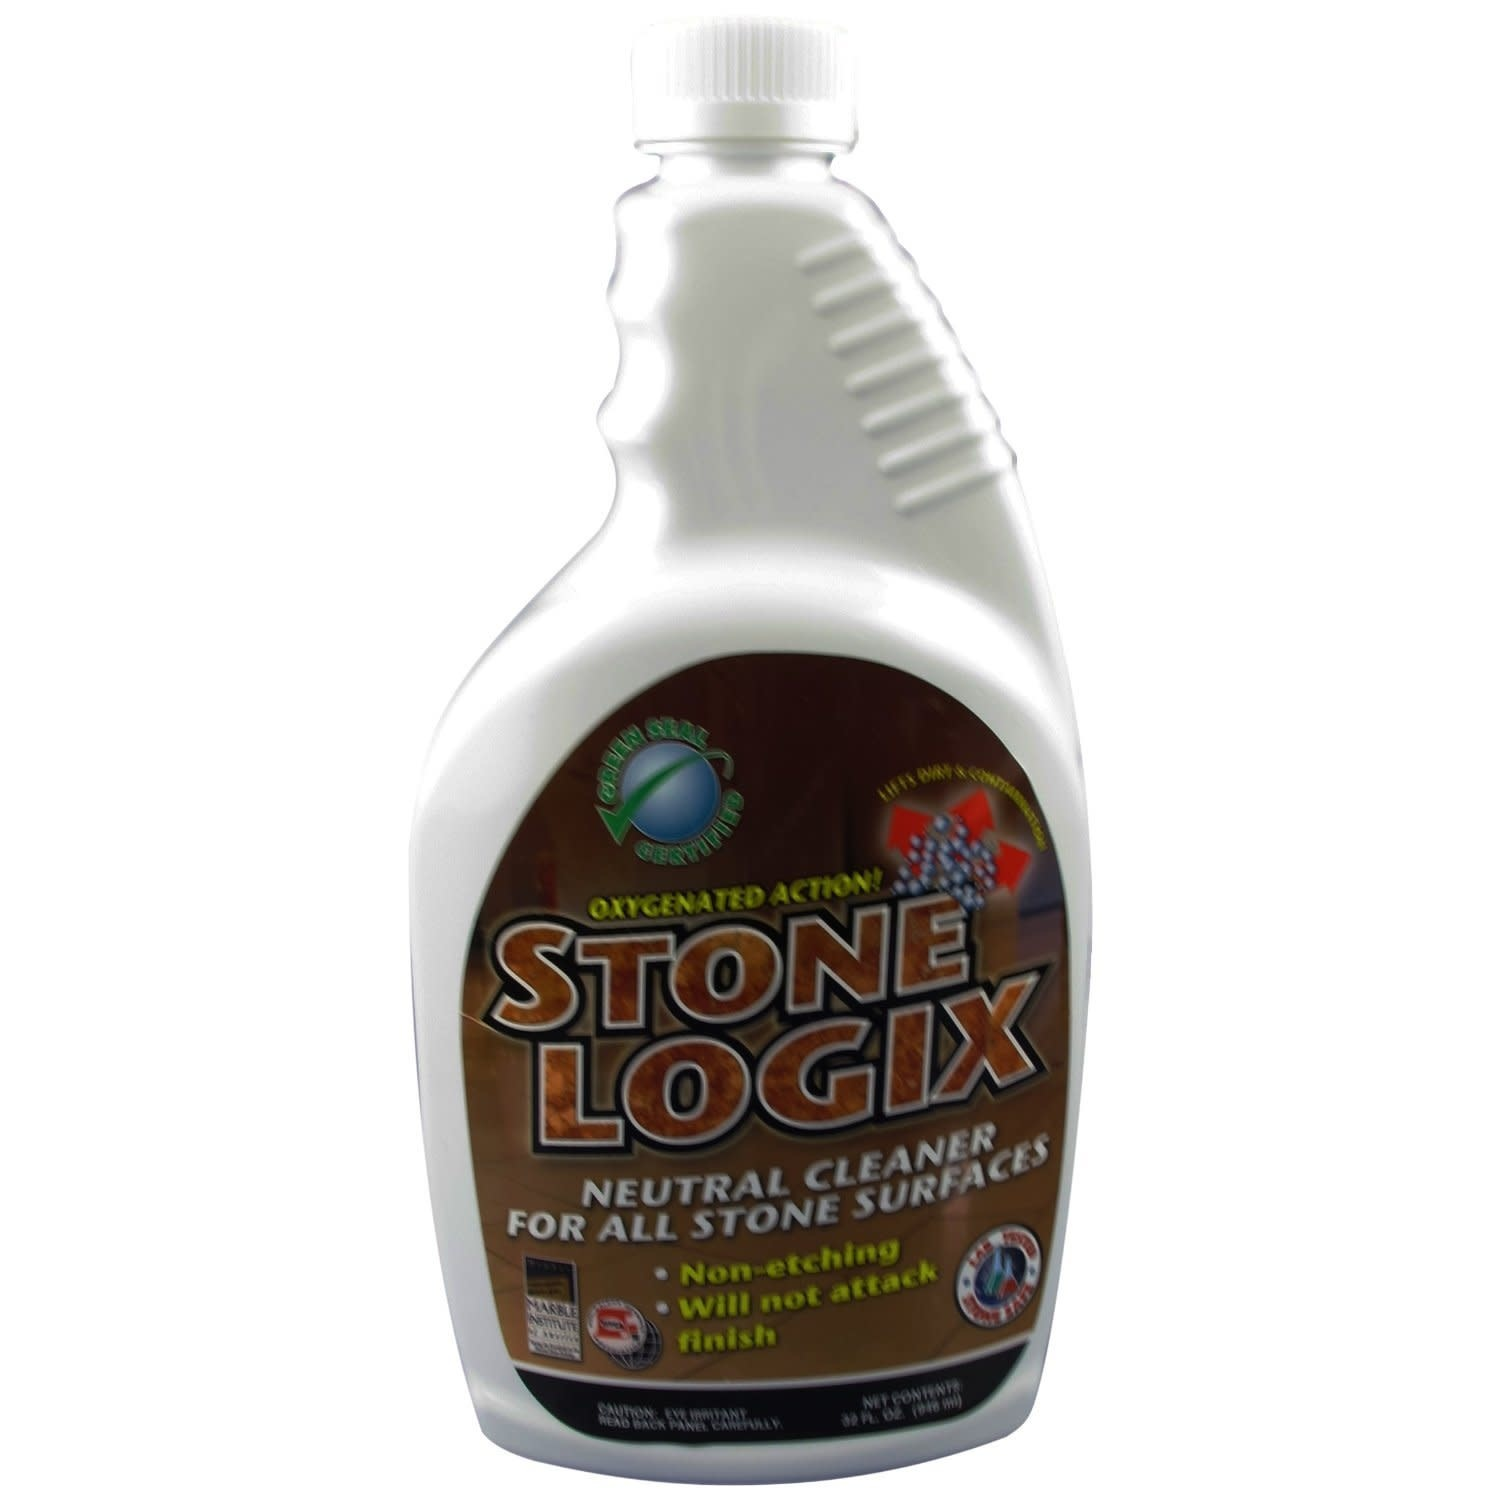 CORE Products Stone Logix Neutral Cleaner for All Services - 32oz